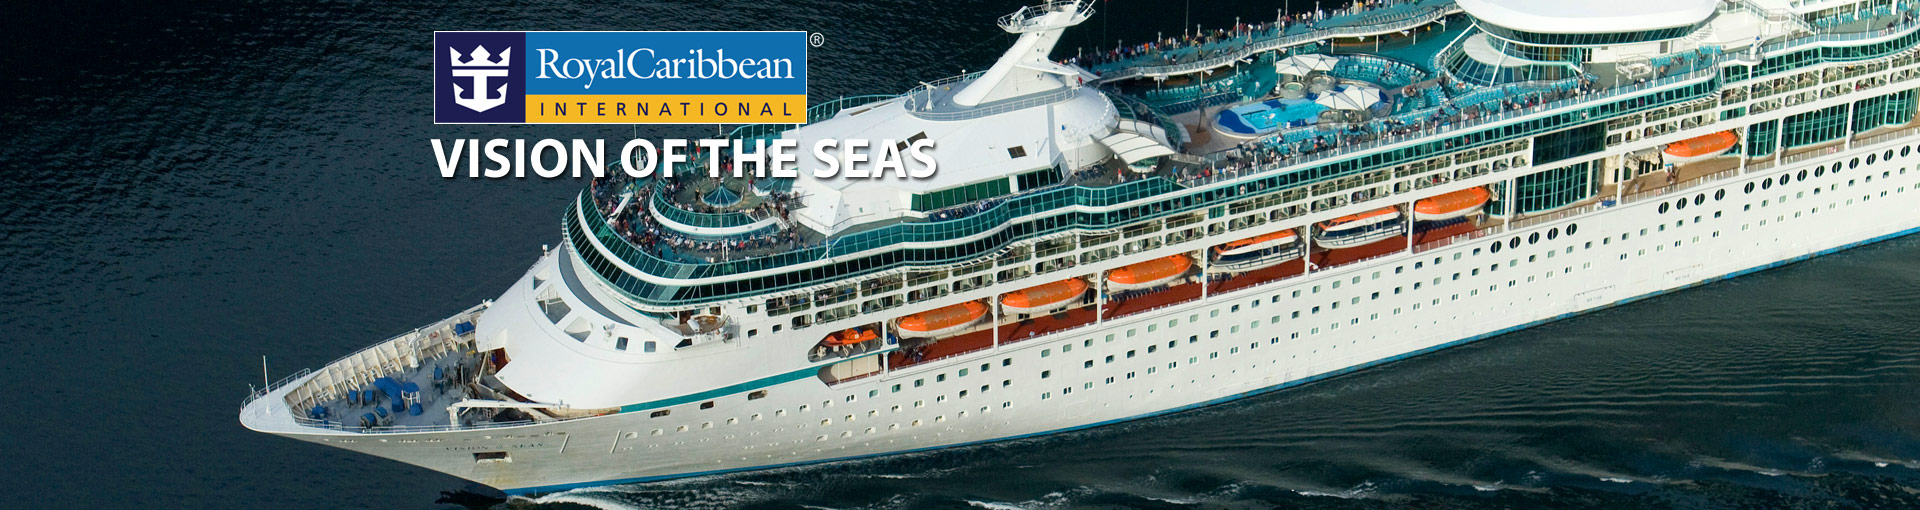 Royal caribbeans vision of the seas cruise ship 2017 and 2018 royal caribbean vision of the seas baanklon Gallery